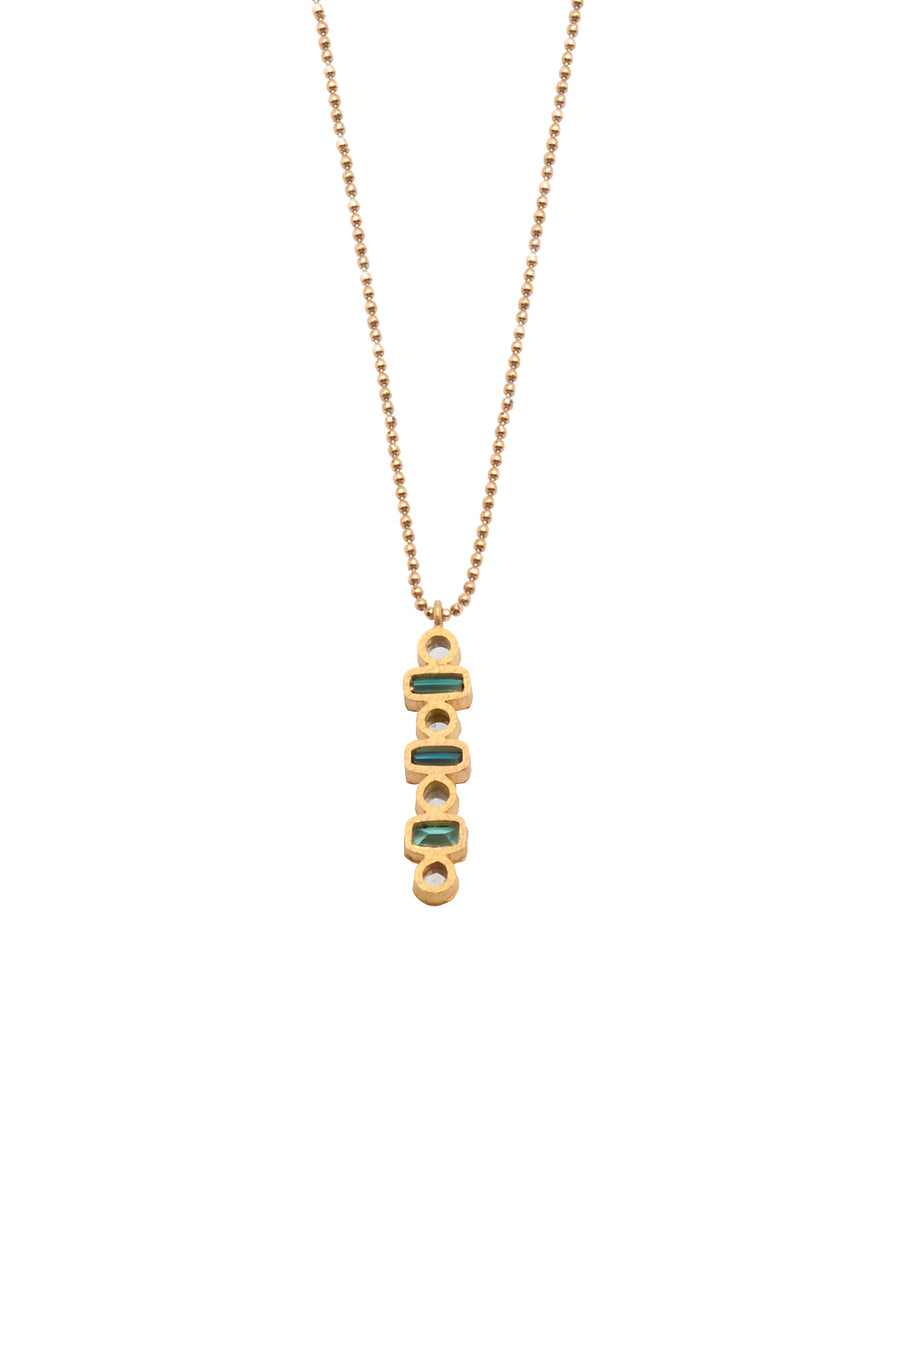 CLEOPATRA 18kt GOLD TOURMALINE AND DIAMOND PENDANT